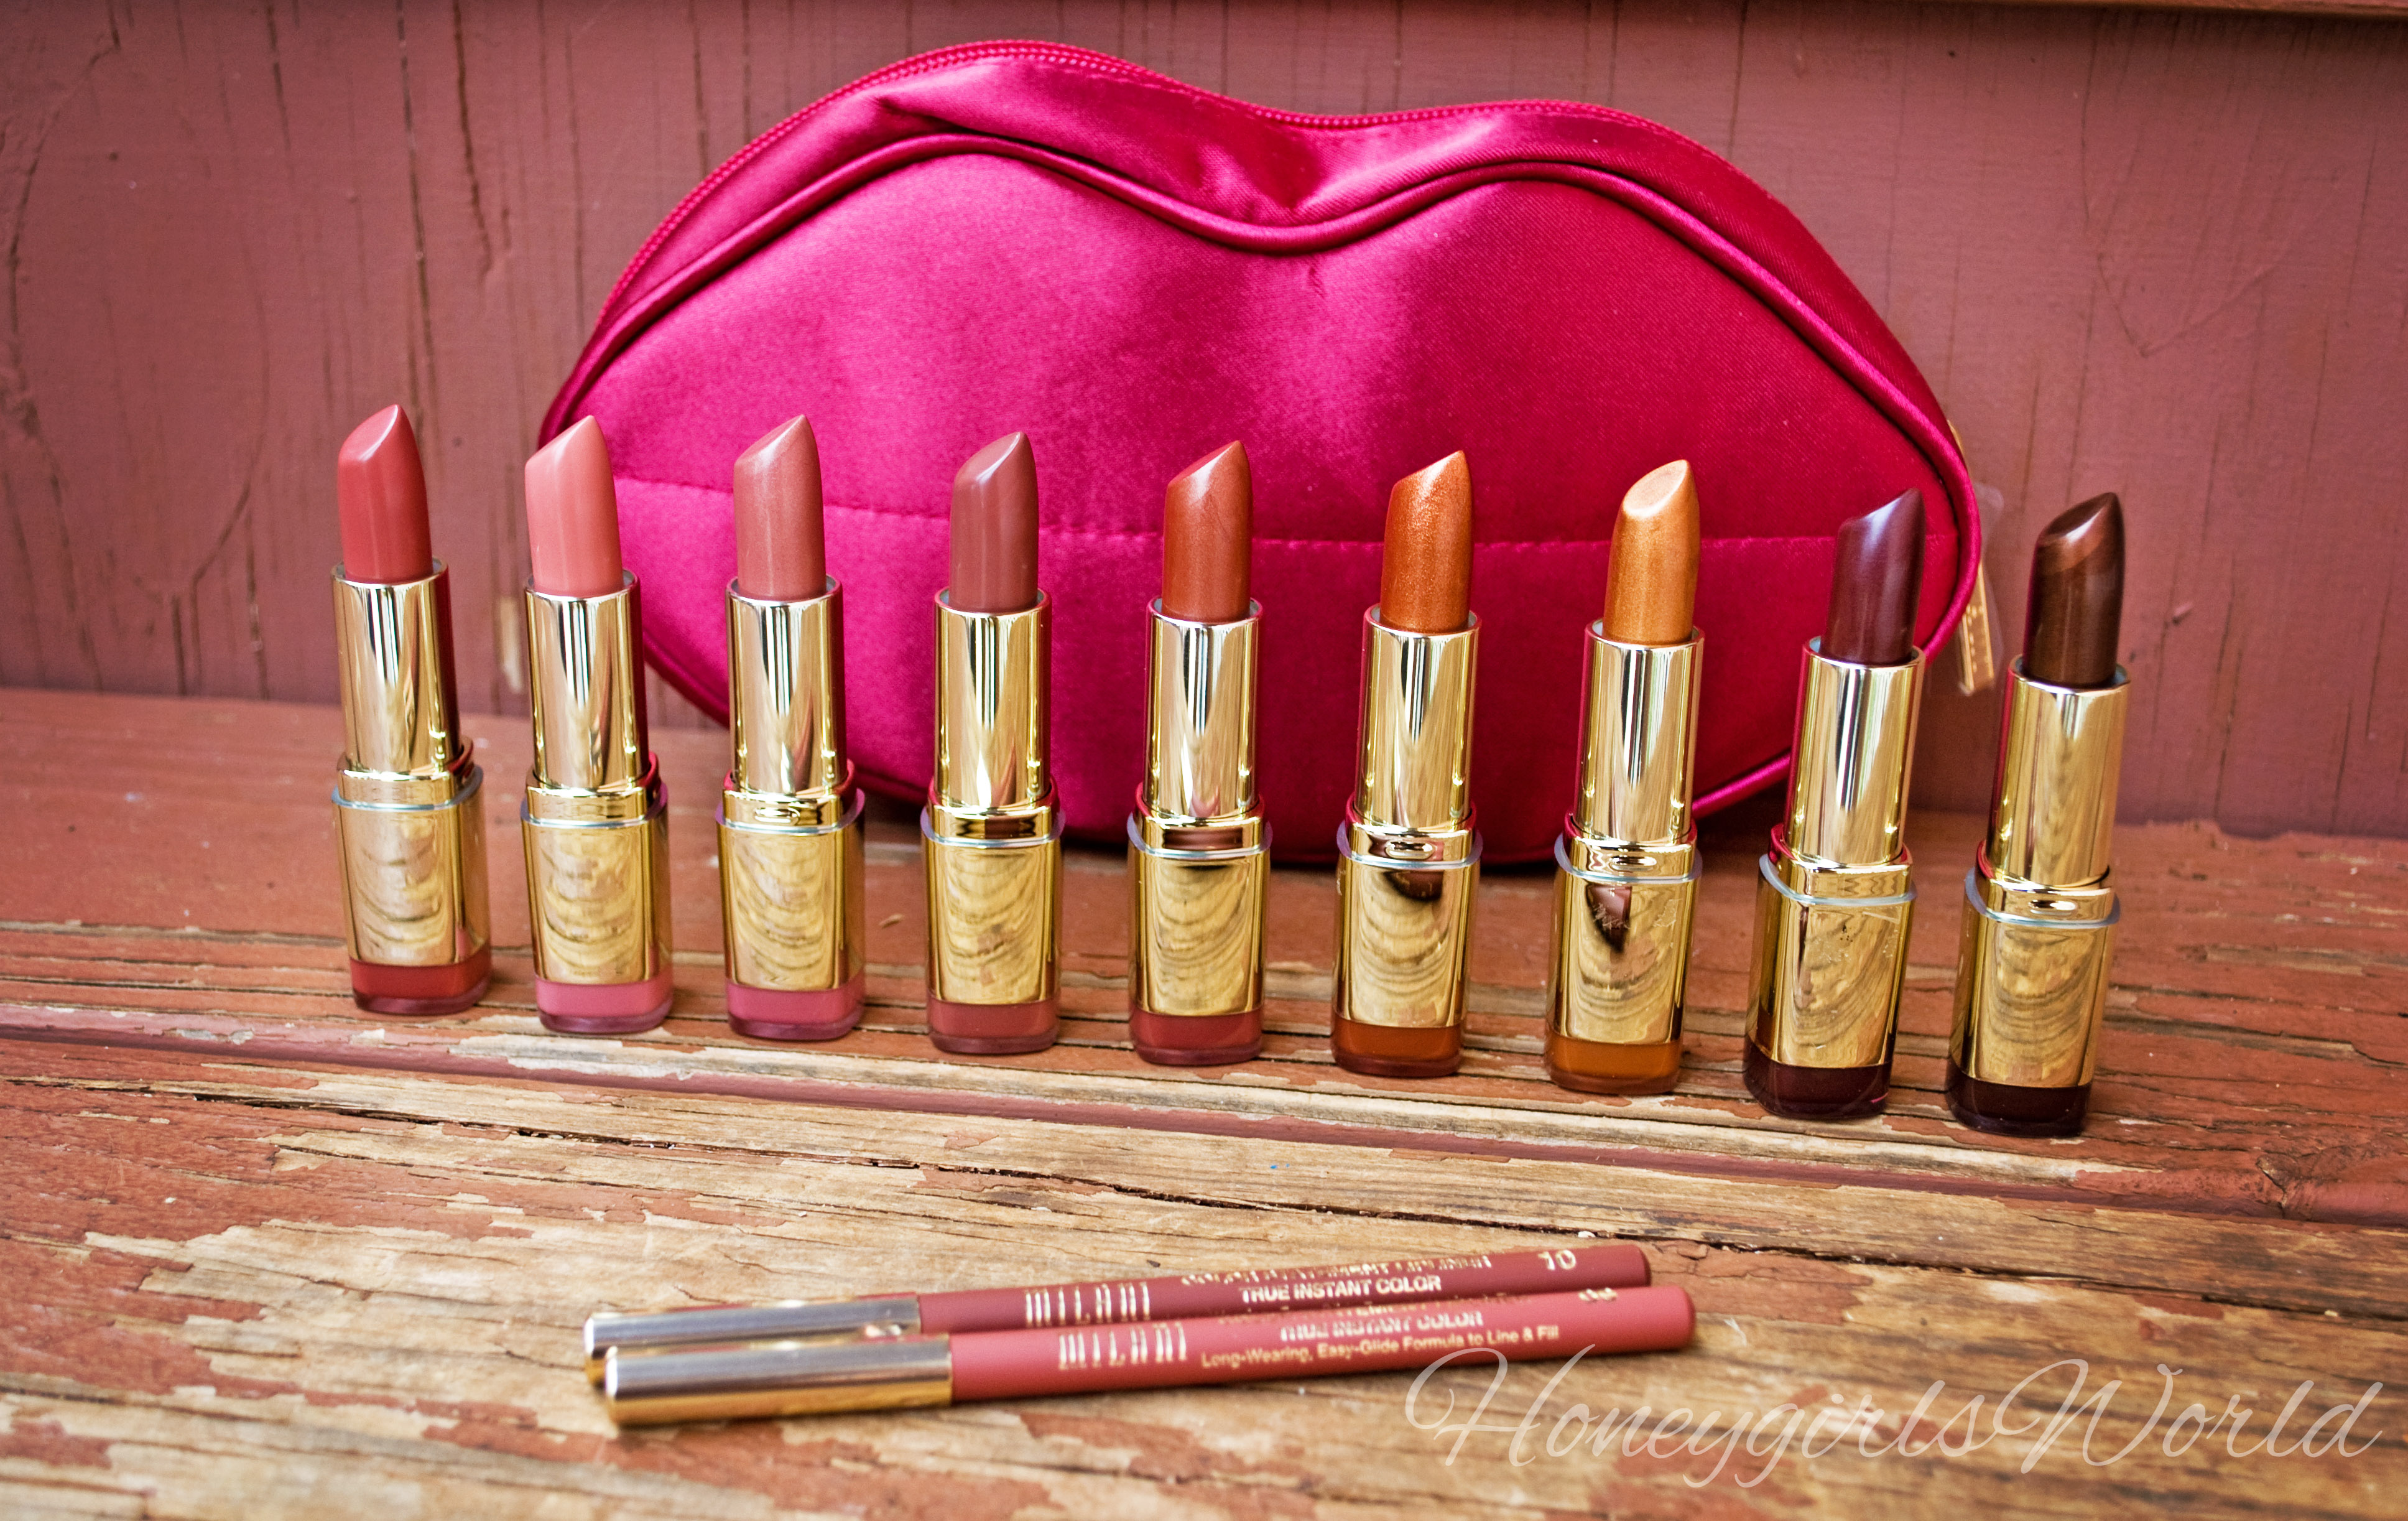 Milani Color Statement Lipsticks – Plums & Nudes (Pic Heavy)